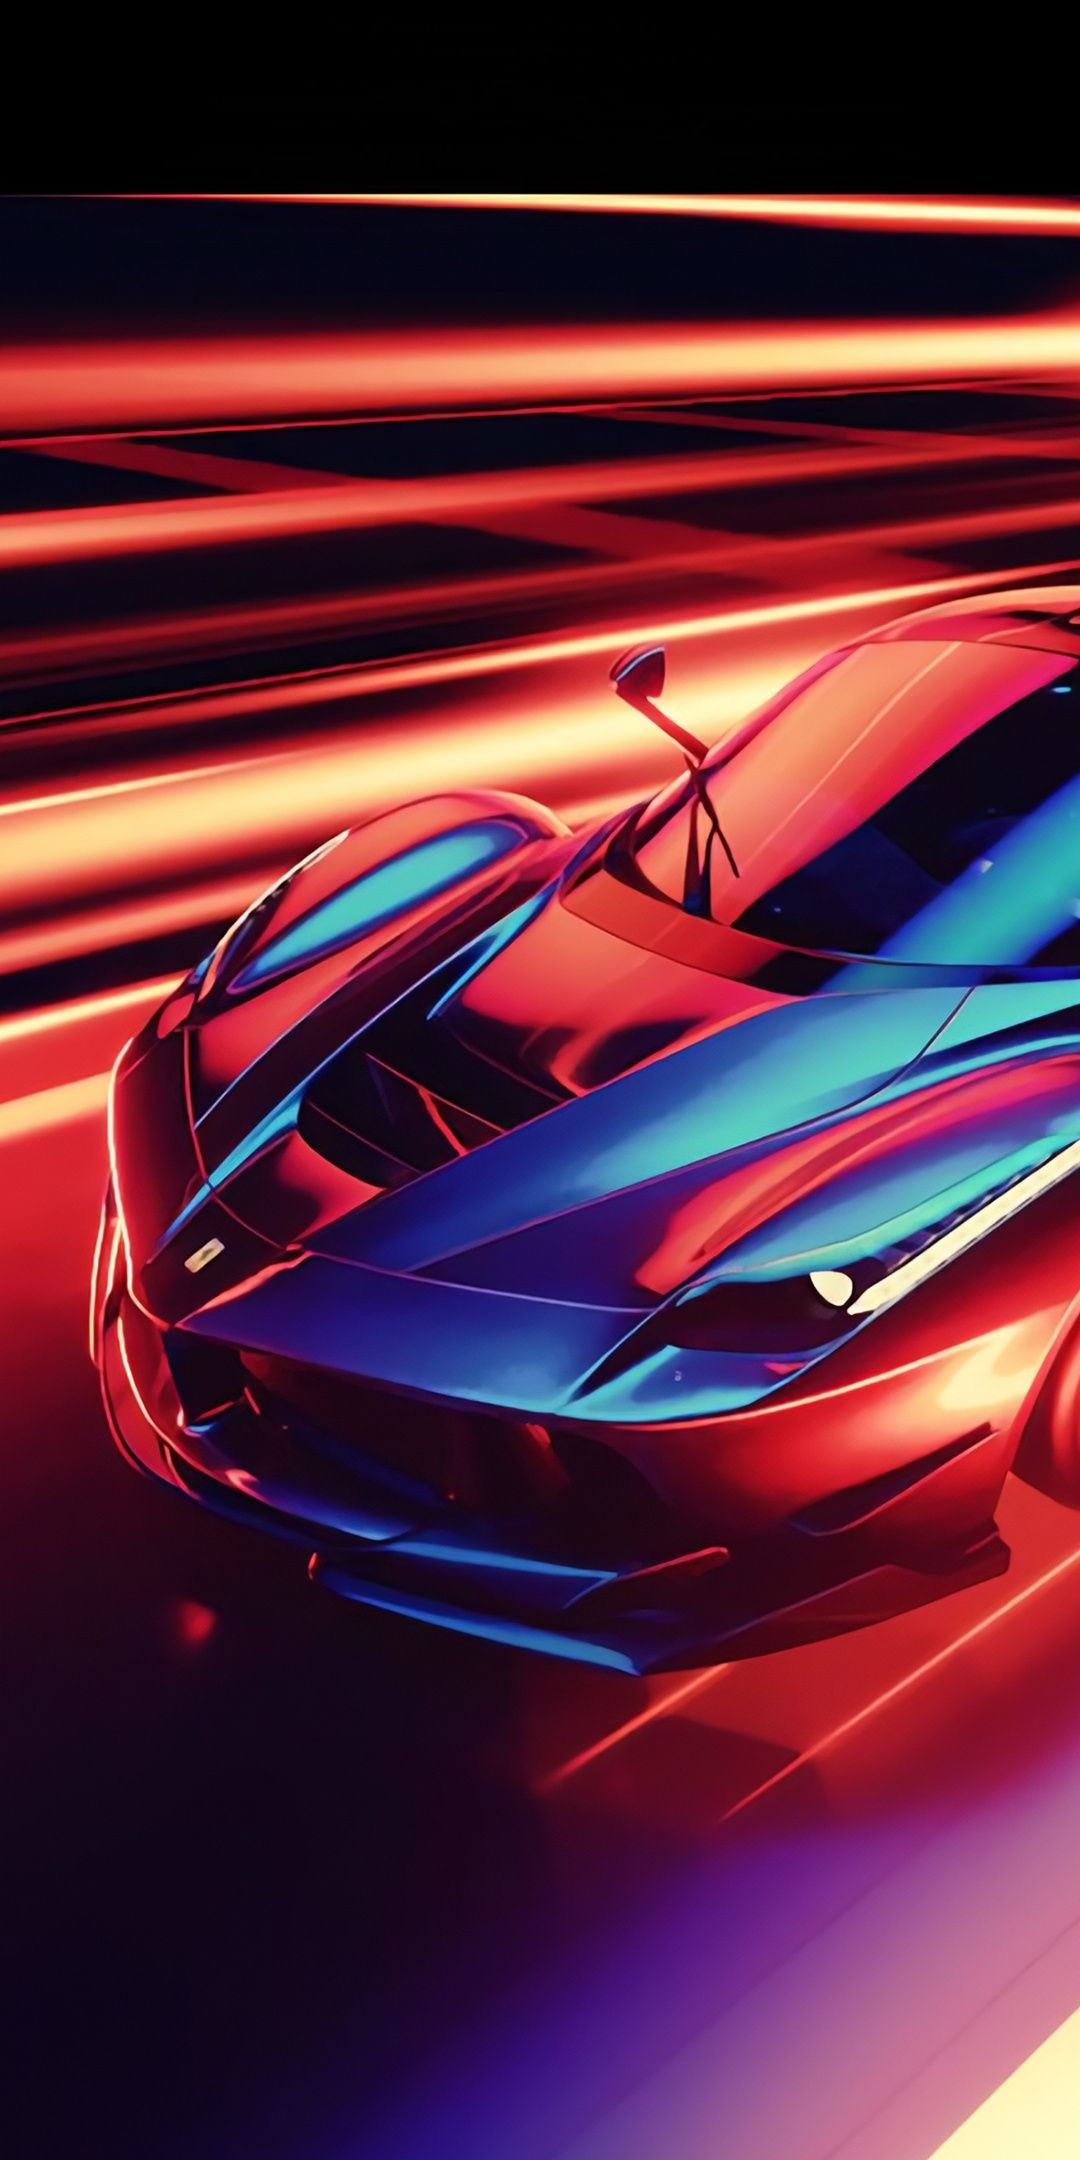 Cgi Art Ferrari Sports Car 1080x2160 Wallpaper Supercars Wallpaper Sports Car Wallpaper Ferrari